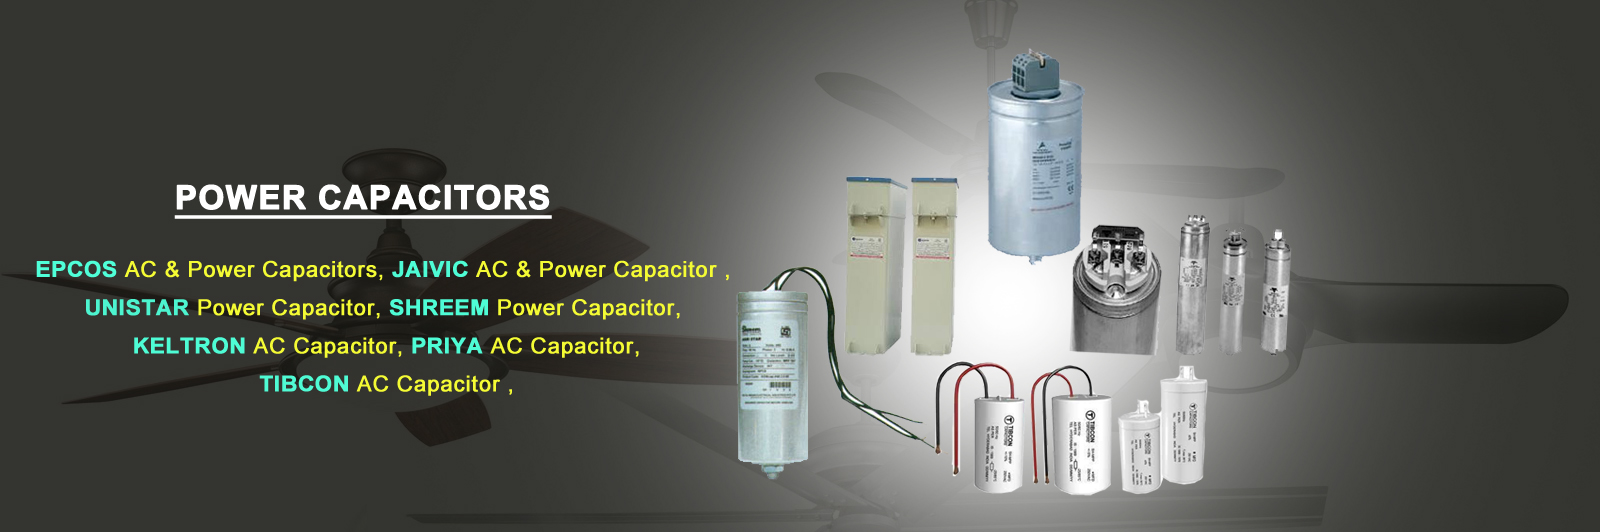 Are Ac Capacitors Universal